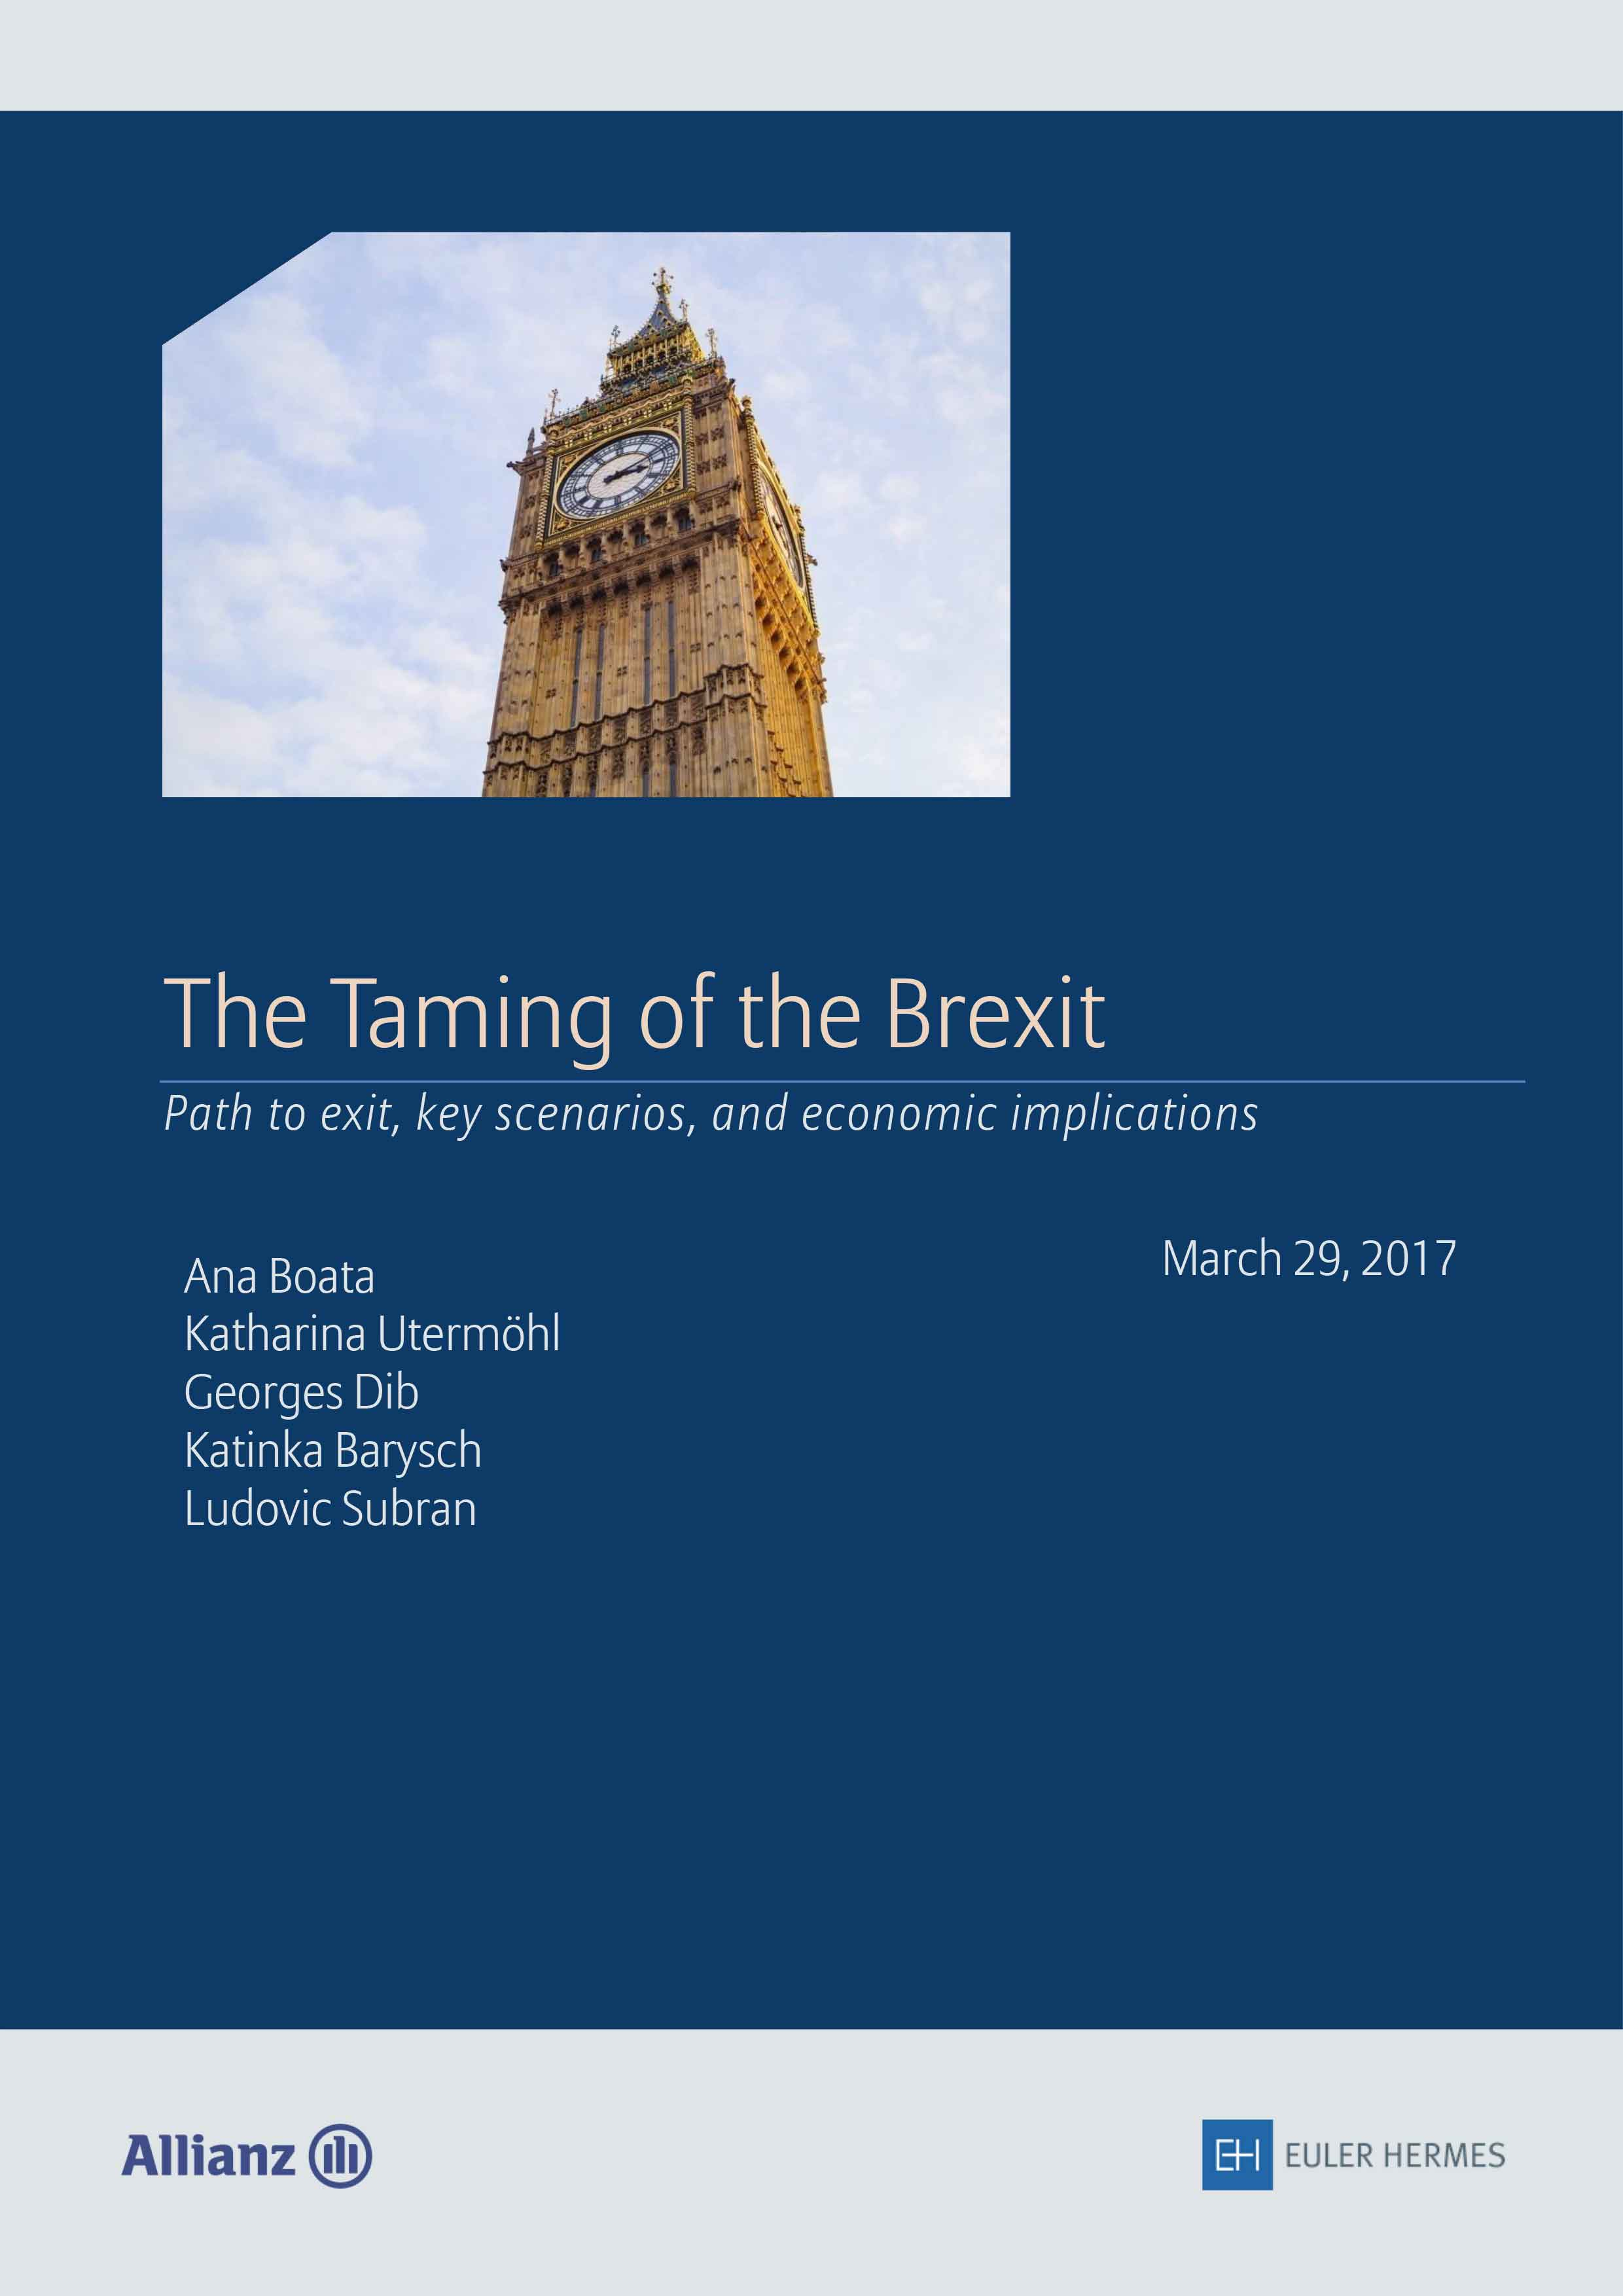 The Taming of the Brexit